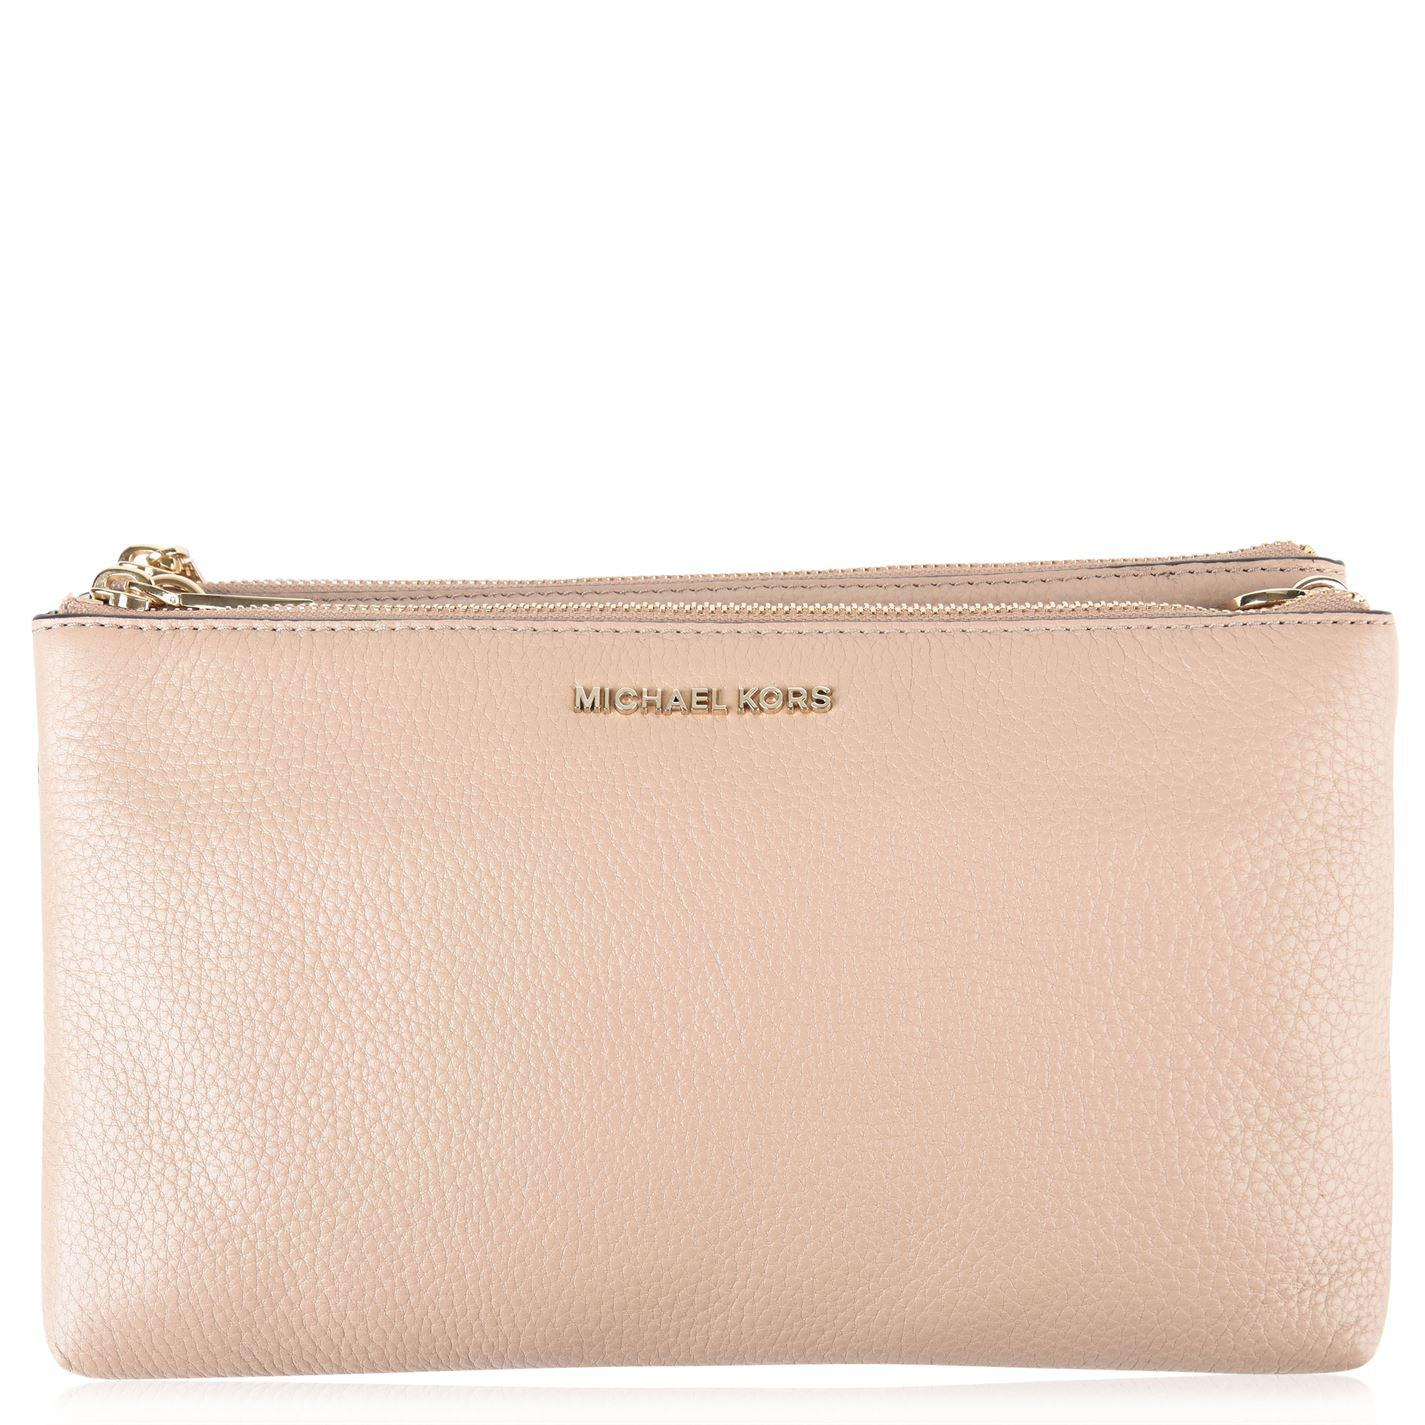 79b0777c3841a Michael Michael Kors Adele Leather Cross Body Double Zip Bag in ...